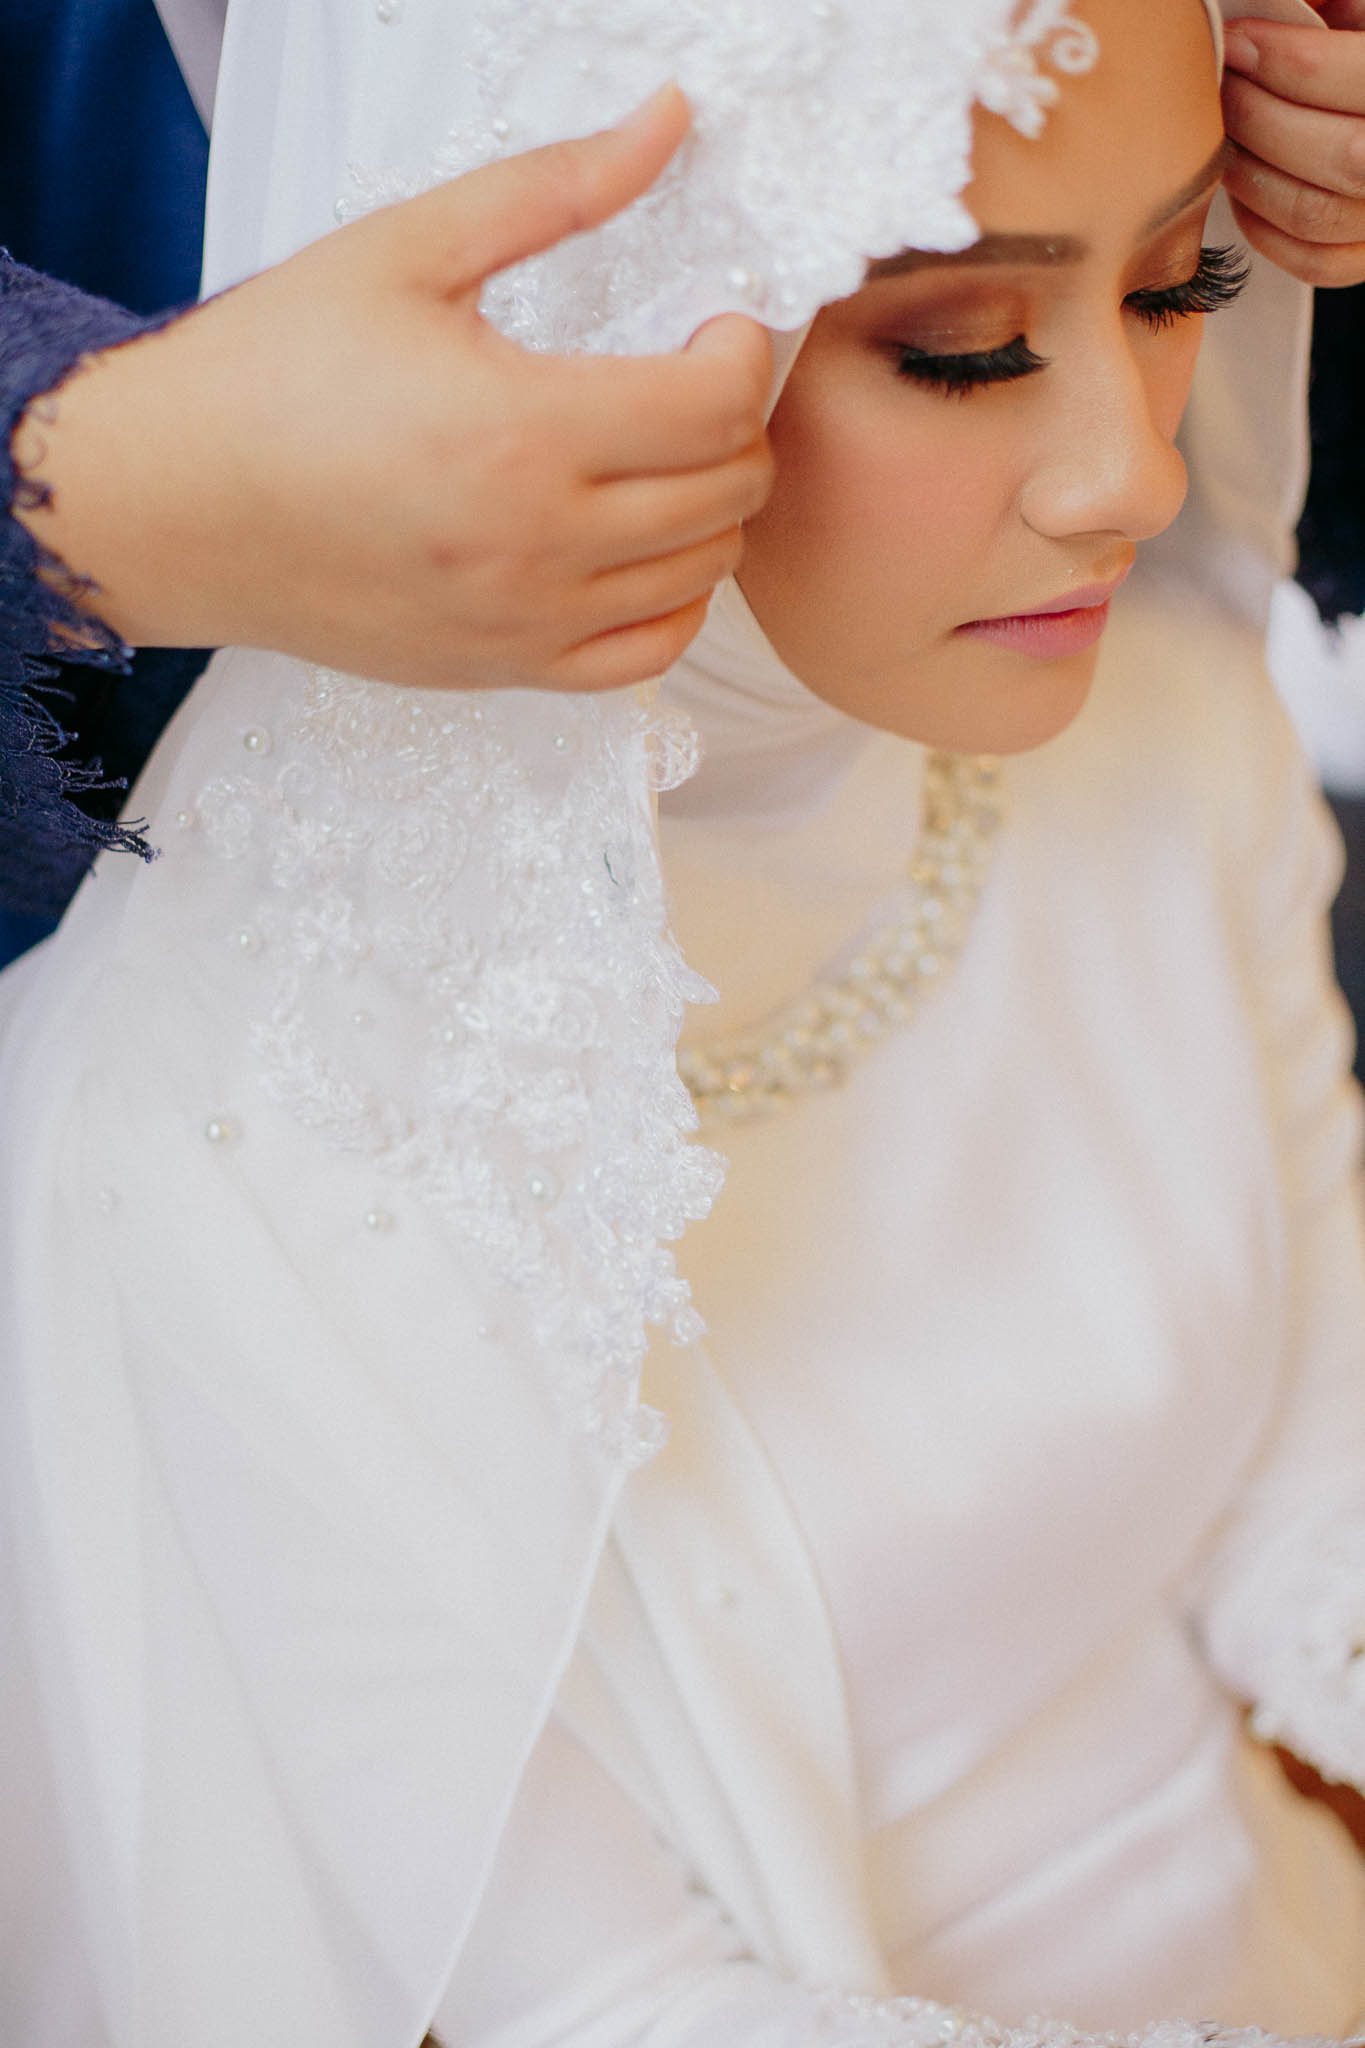 singapore-wedding-photographer-sarah-razif-06.jpg